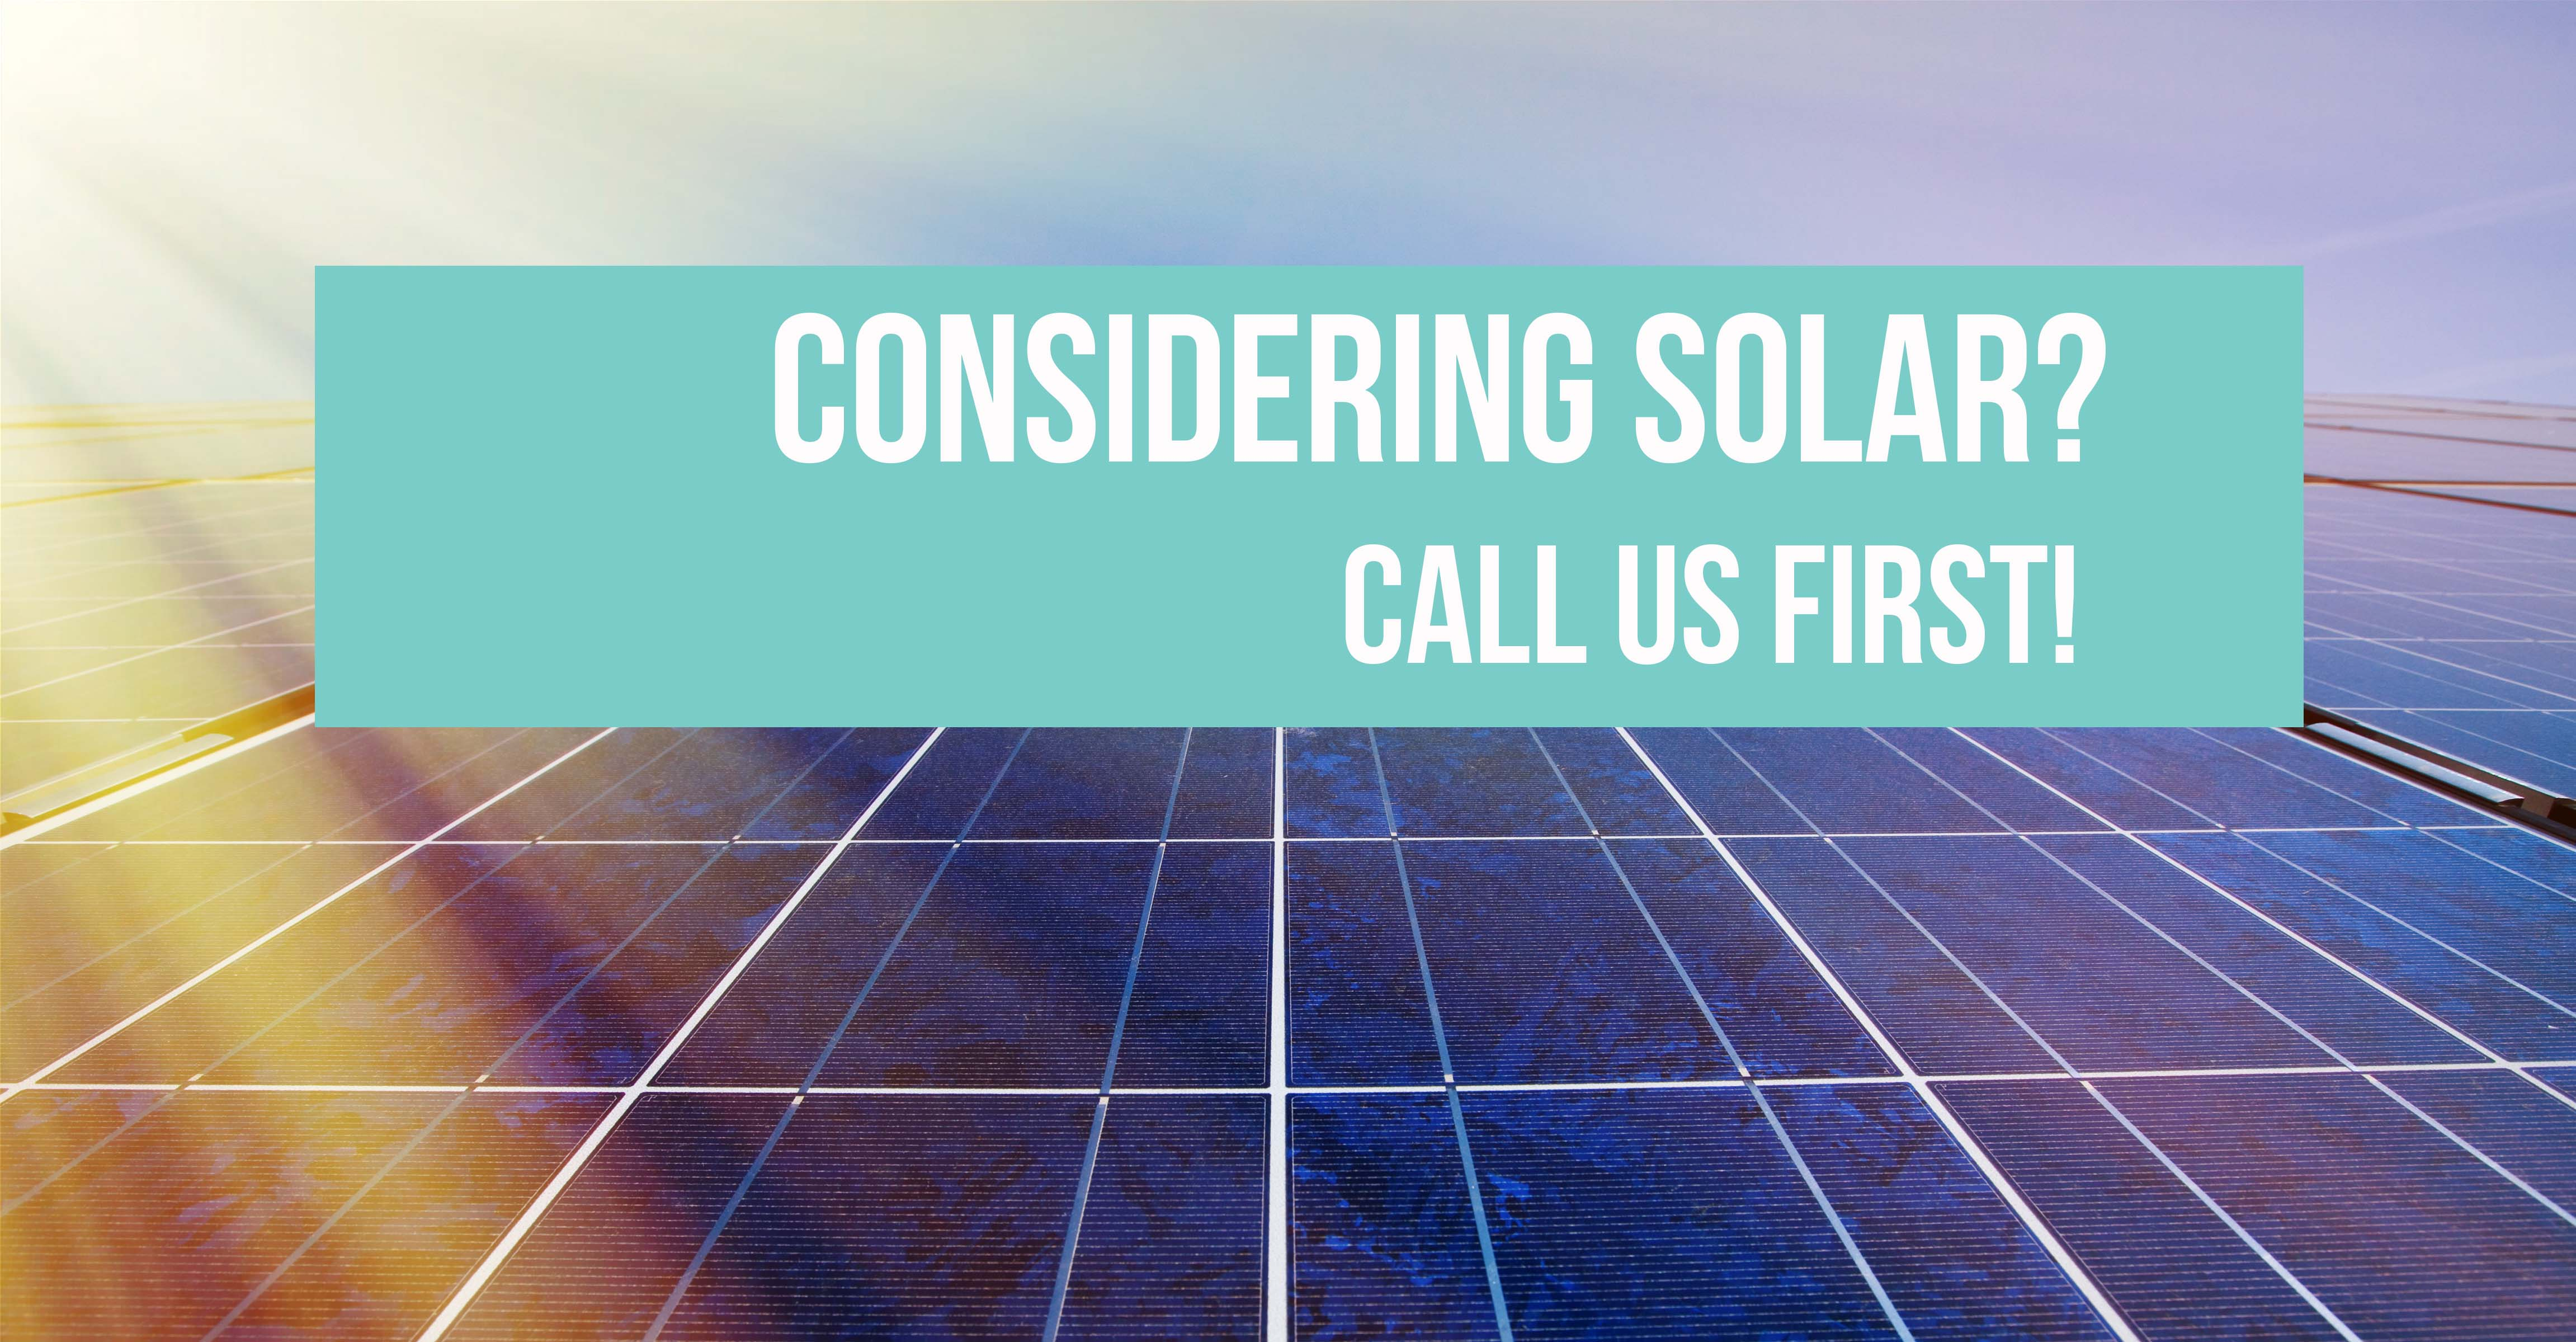 Solar?  Call us first!